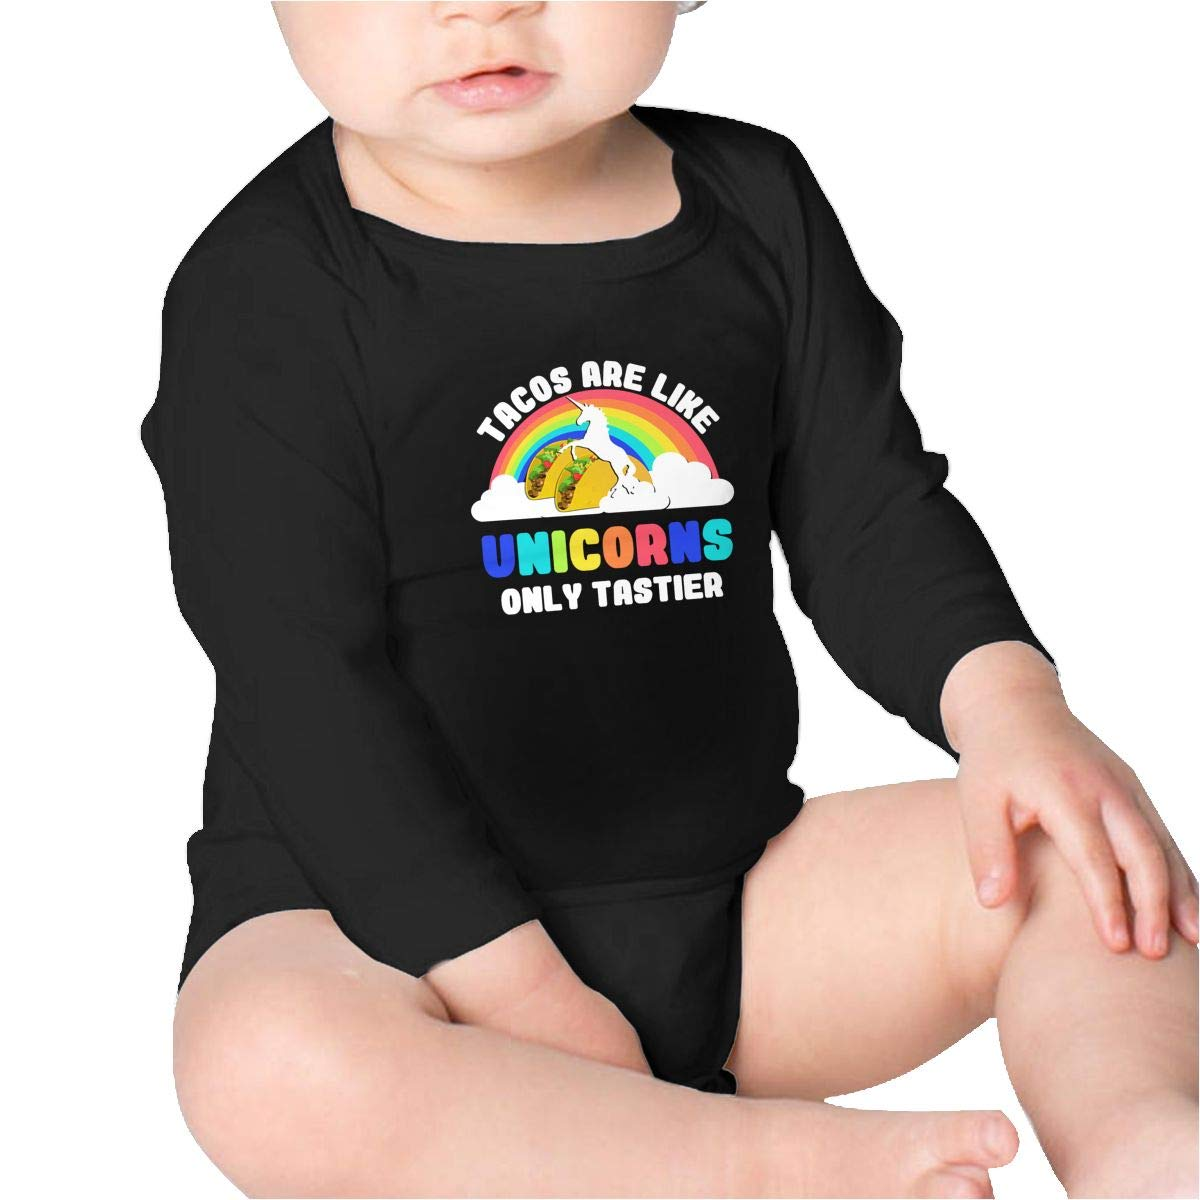 Tacos are Like Unicorns Only Tastier Kids Cotton,Long Sleeve Baby Romper